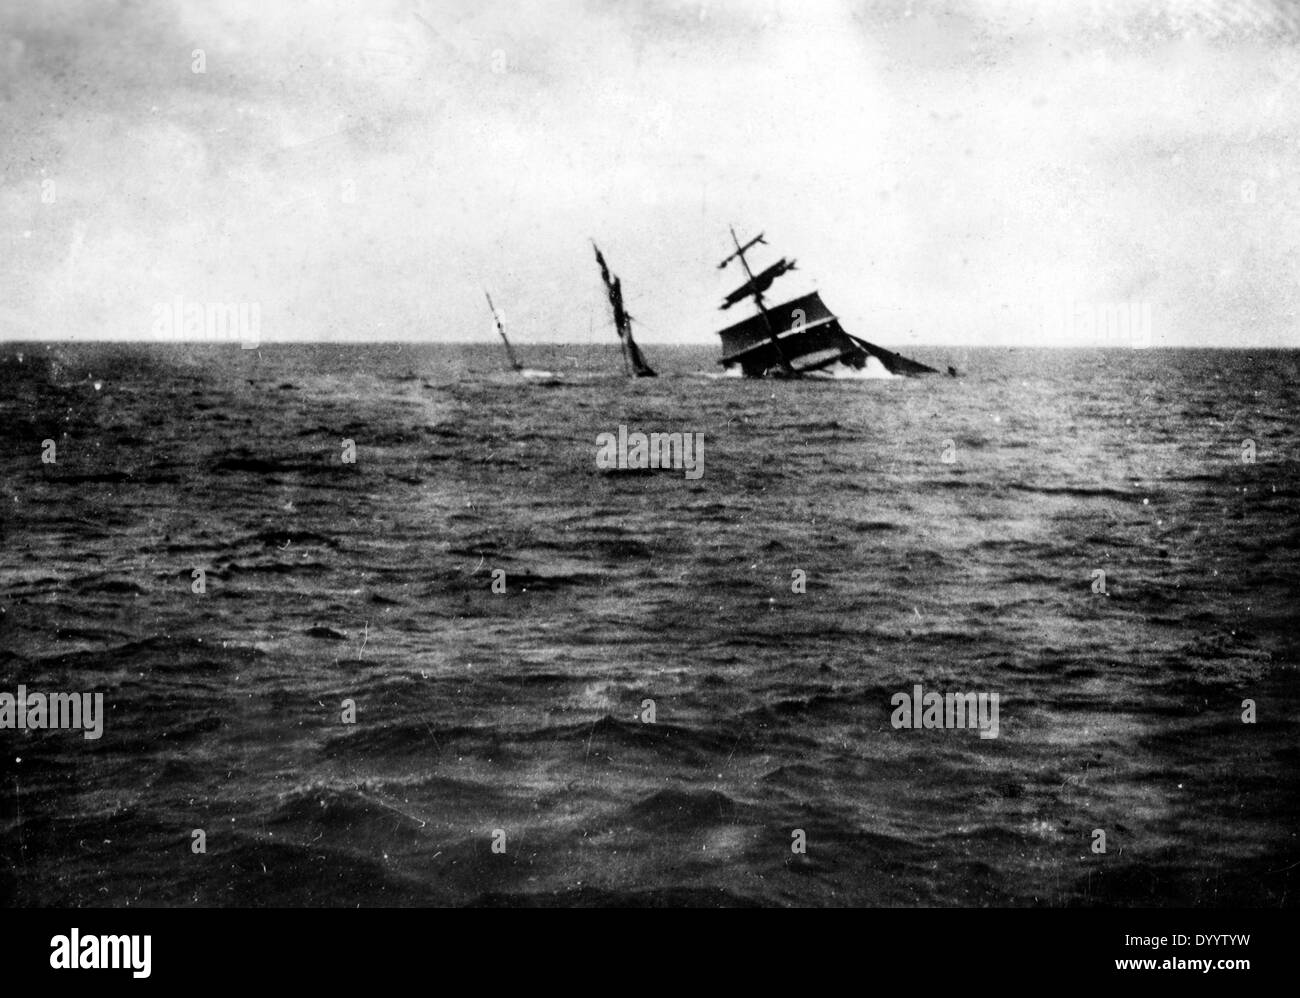 Sinking of the merchant ship 'John Kirby', 1918 - Stock Image